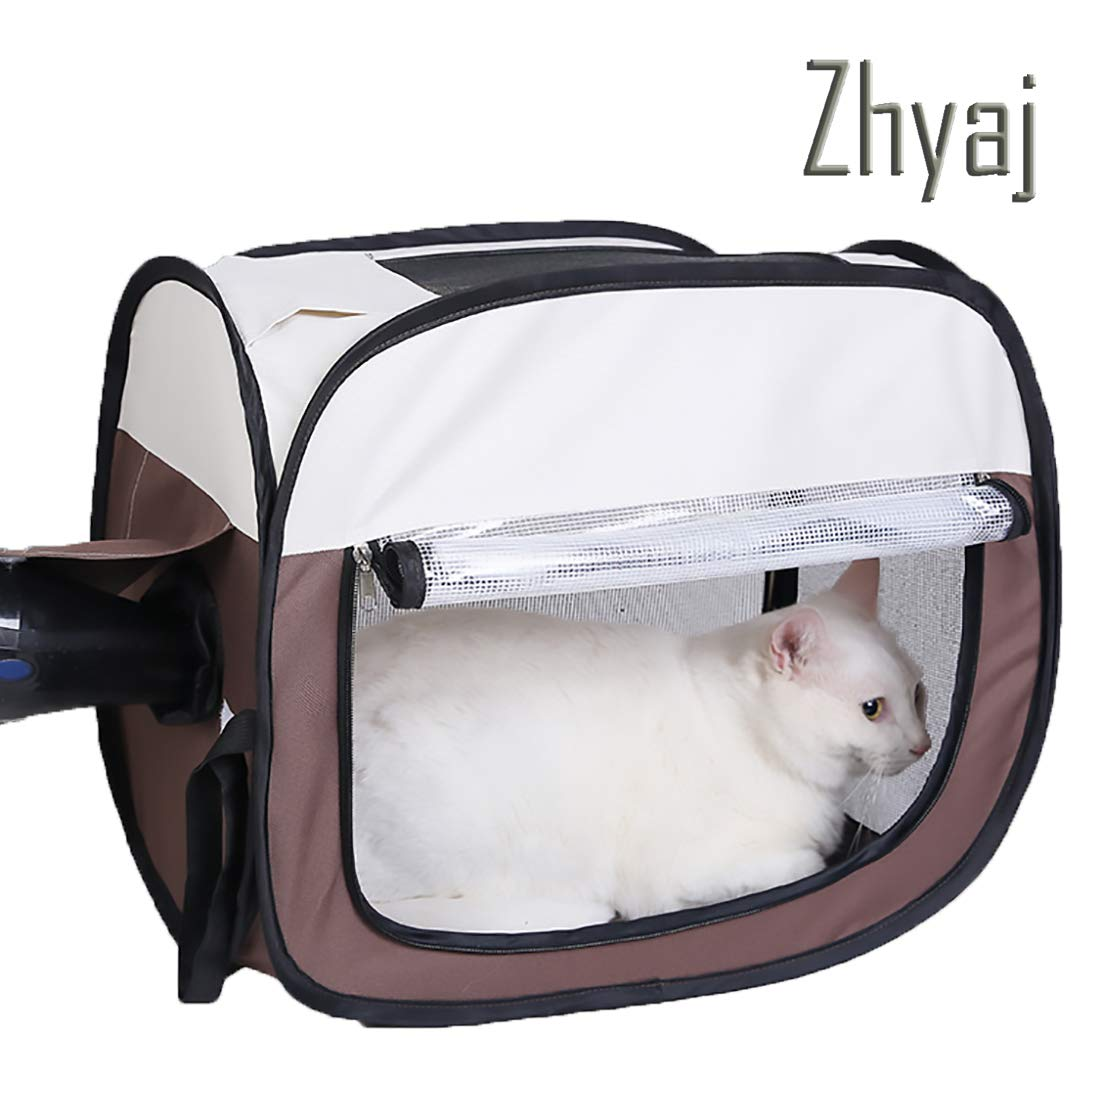 A Outdoor Dog Kennel, Foldable Portable Car Pet Carrier Drying Box 600D Oxford Cloth Large Dog House Dog Tent,A